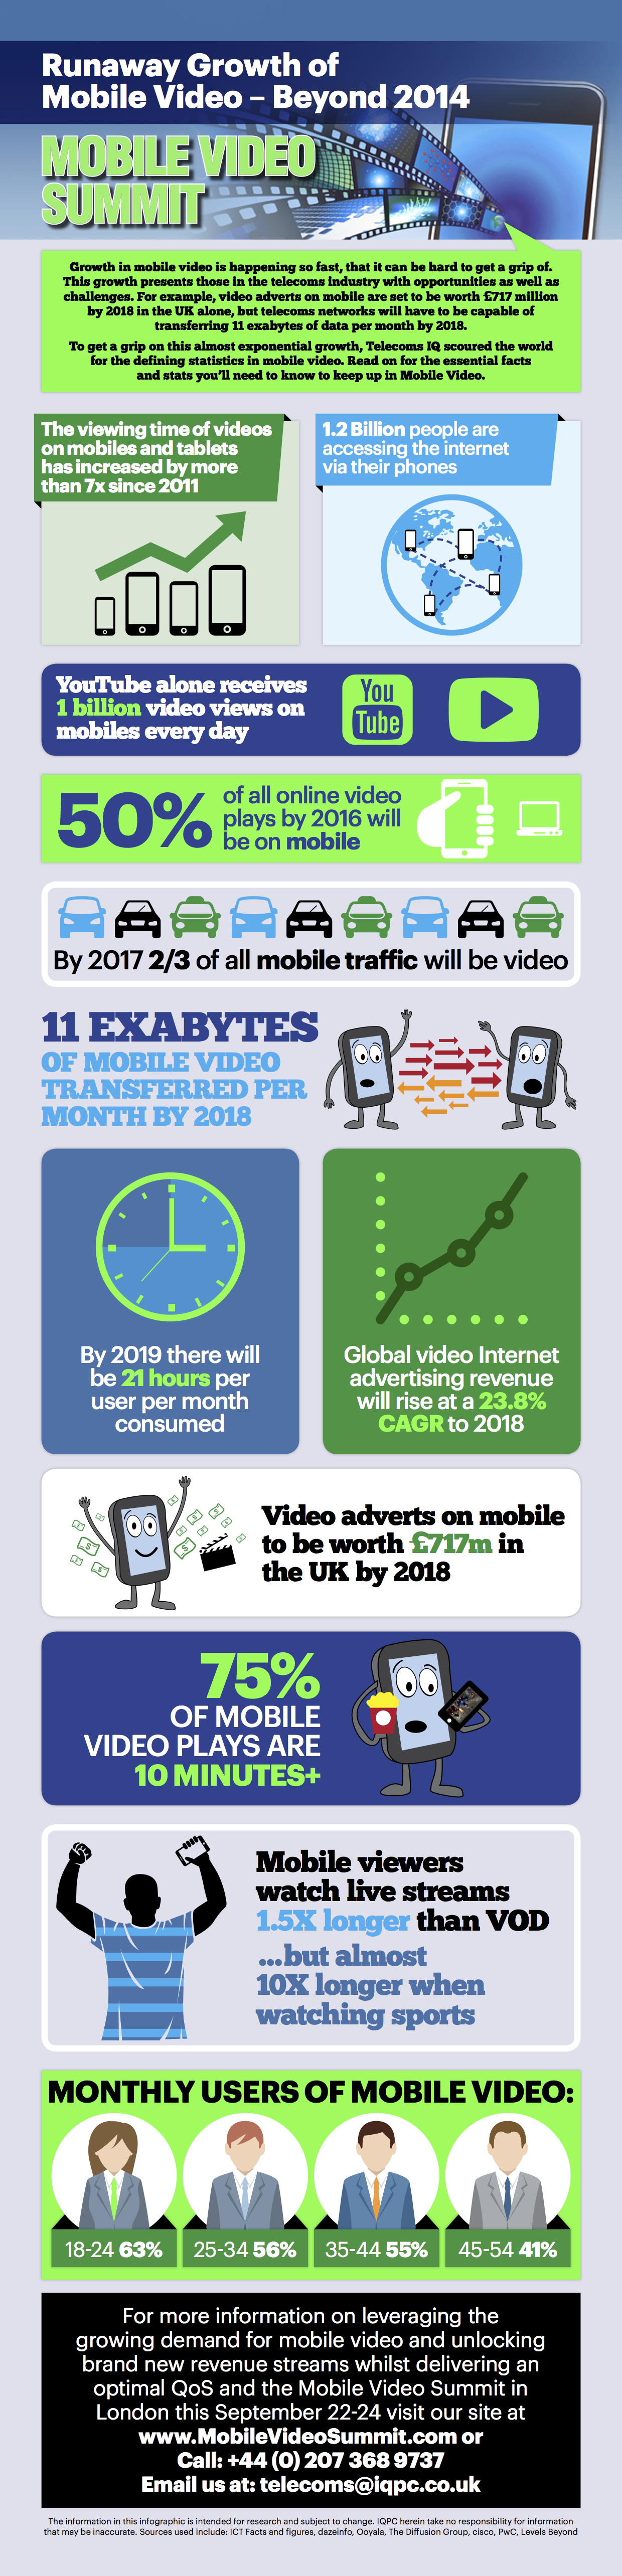 Infographic Mobile Video